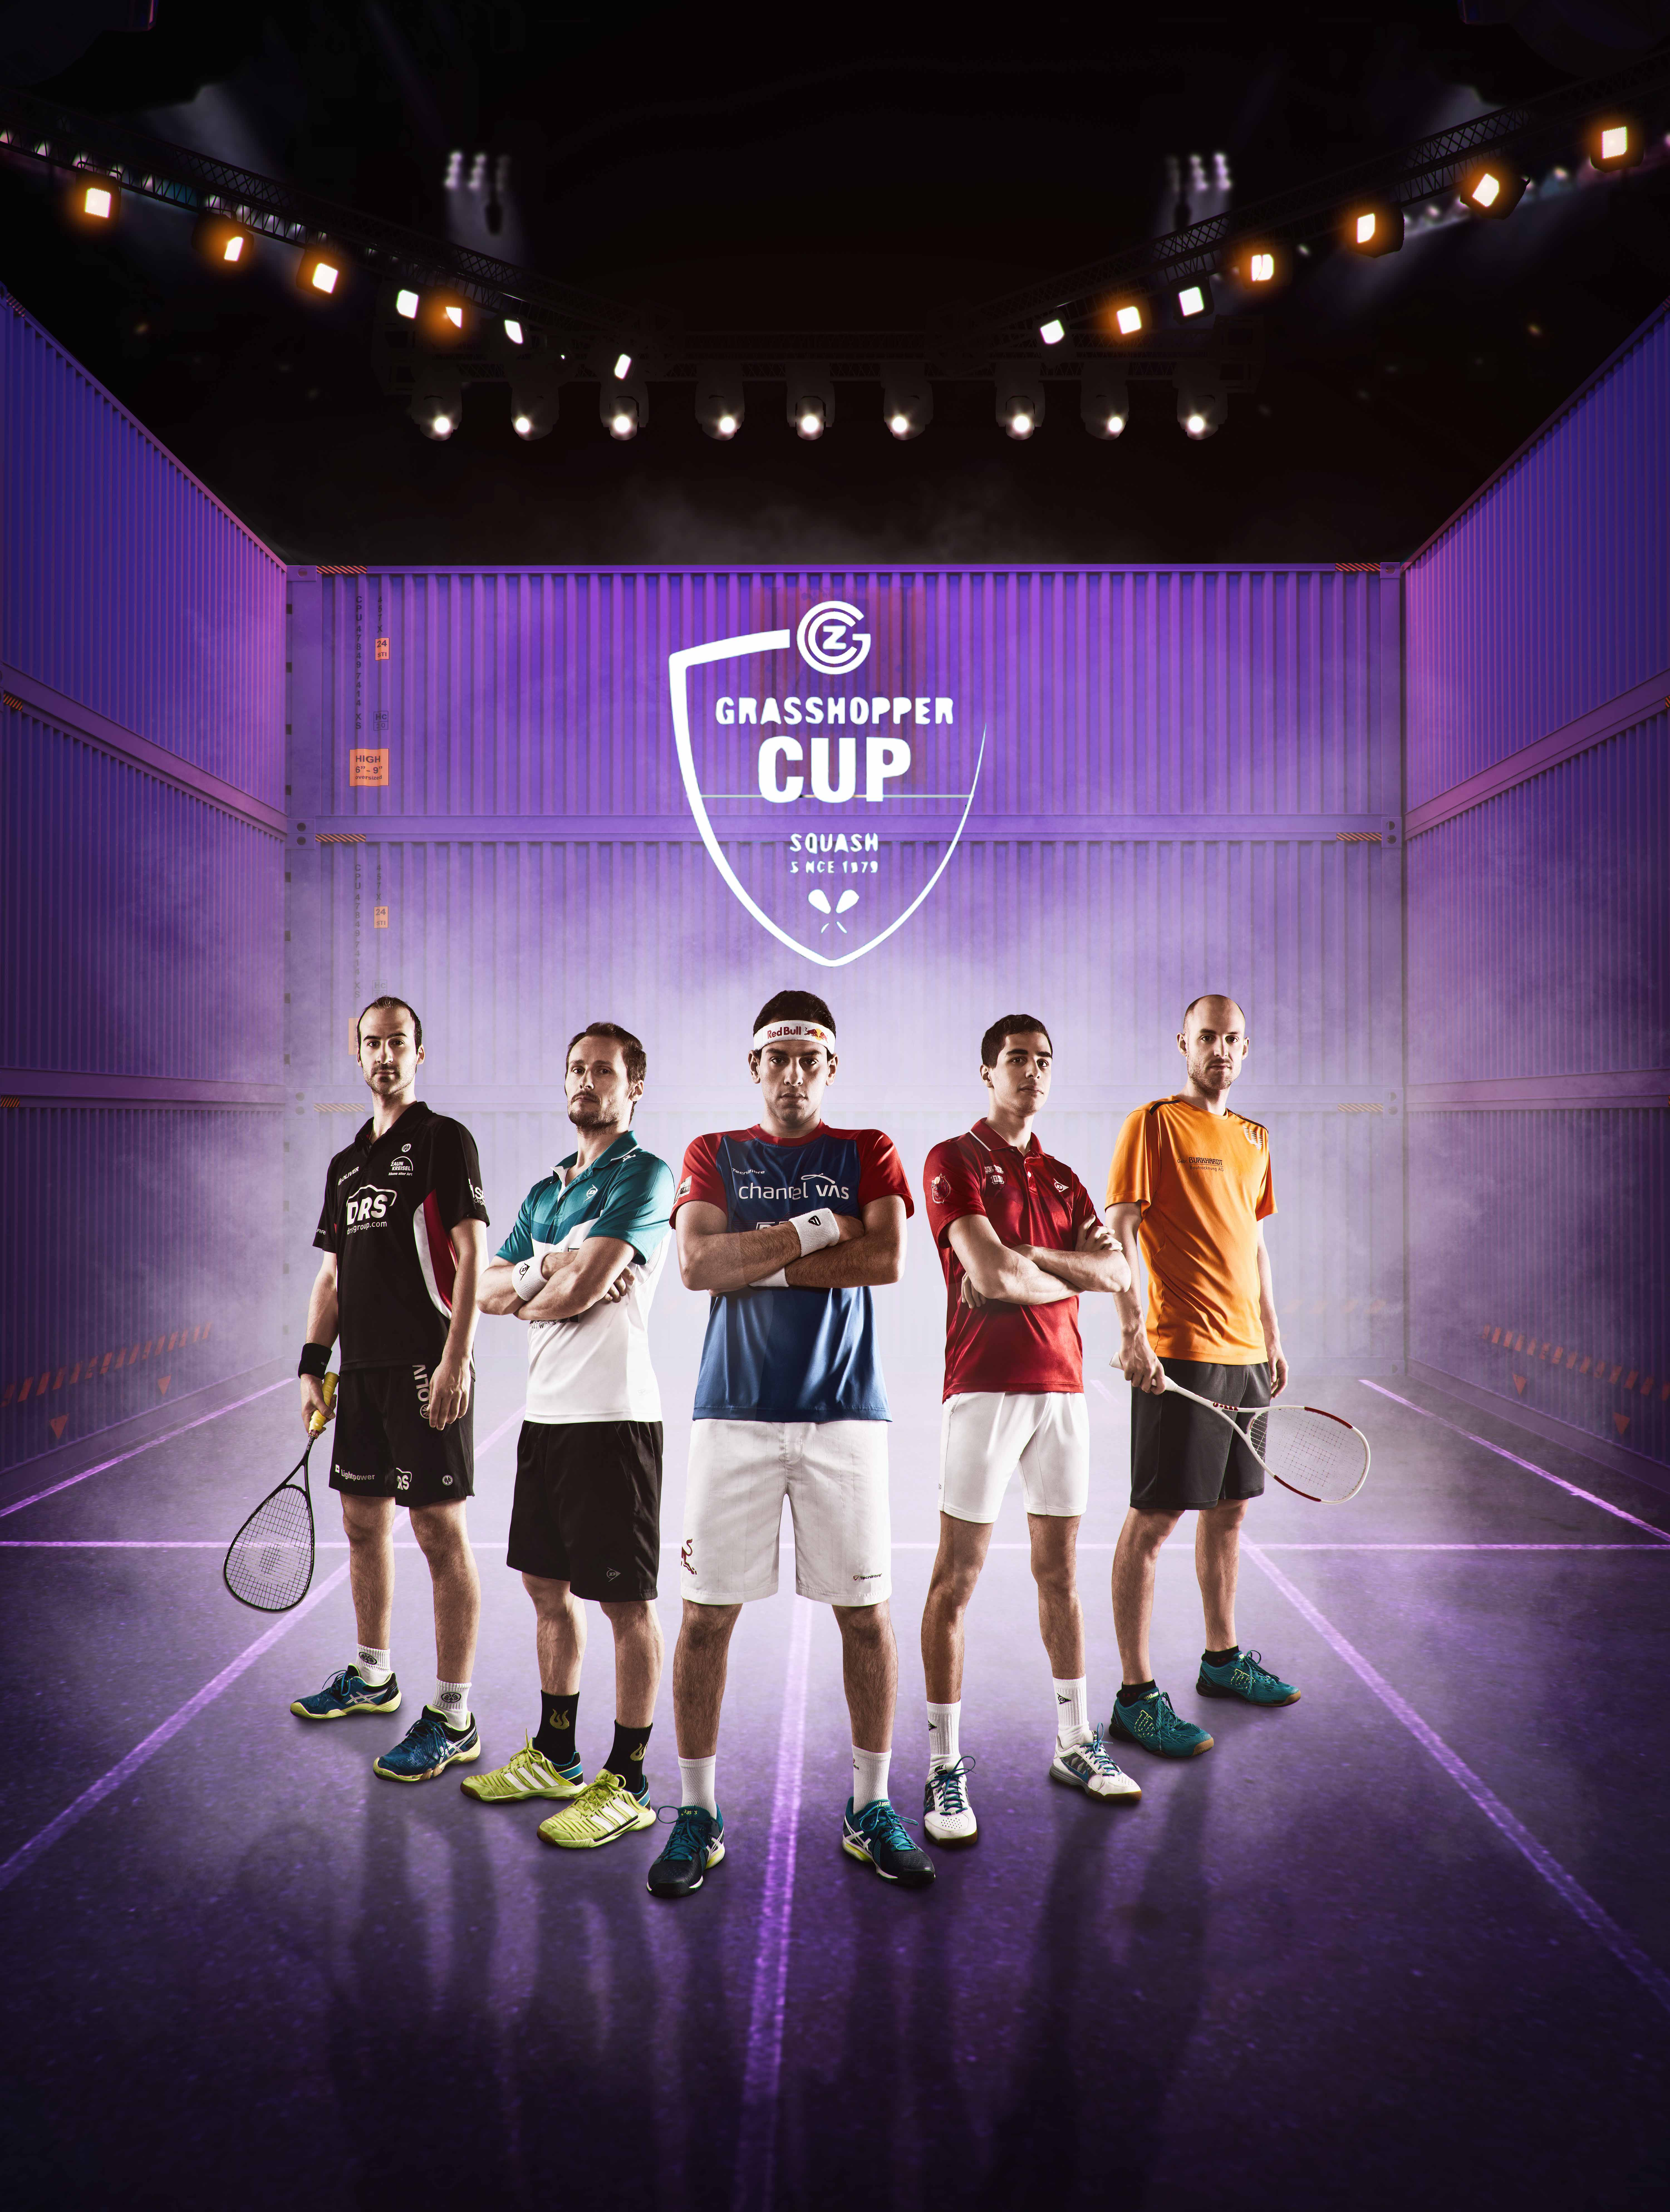 Grasshopper Cup 2018 CG Work